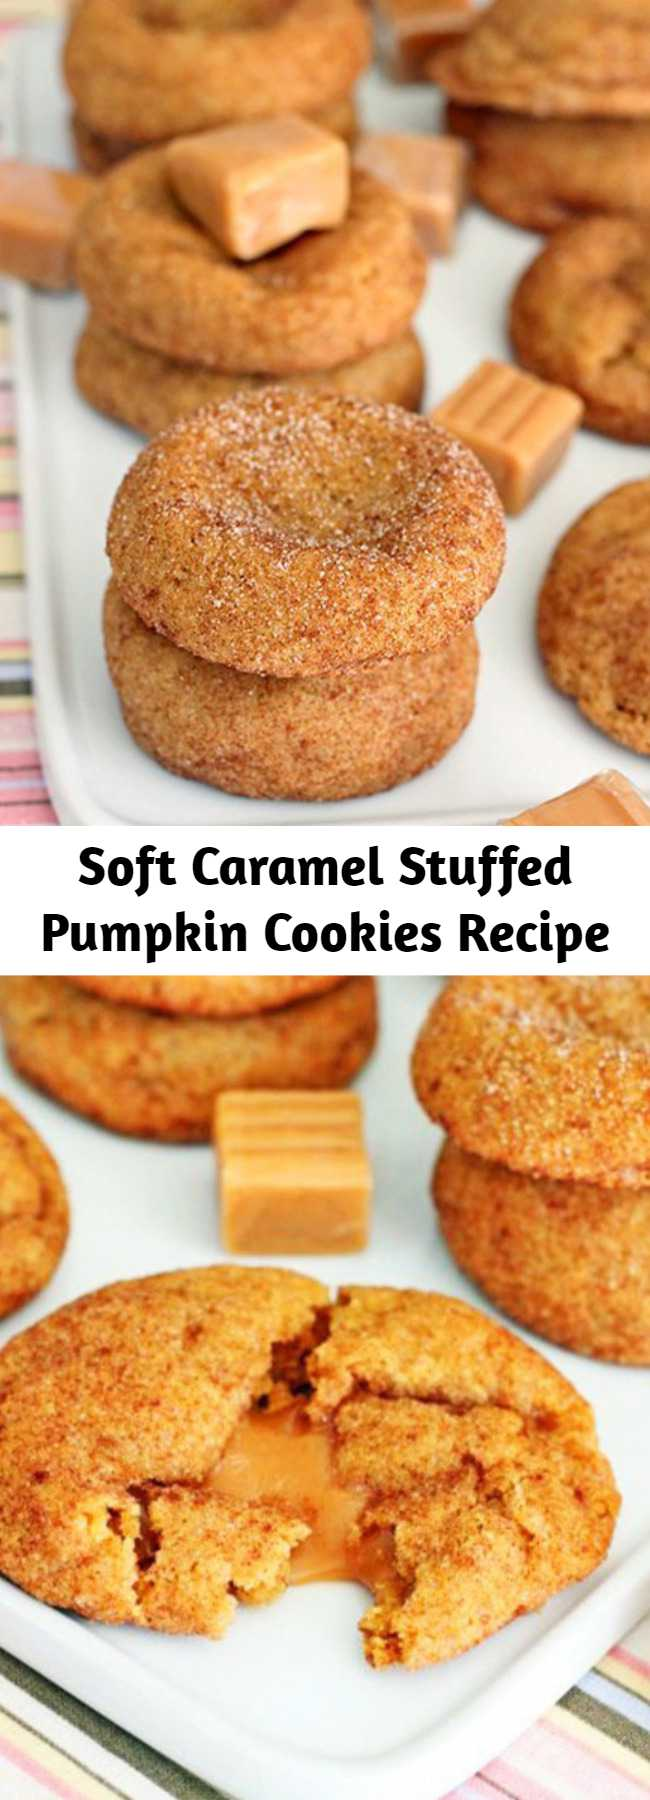 Soft Caramel Stuffed Pumpkin Cookies Recipe - Soft cinnamon-spiked pumpkin cookies with surprise caramel centers. They have a subtle pumpkin flavor highlighted by cinnamon both inside and out.